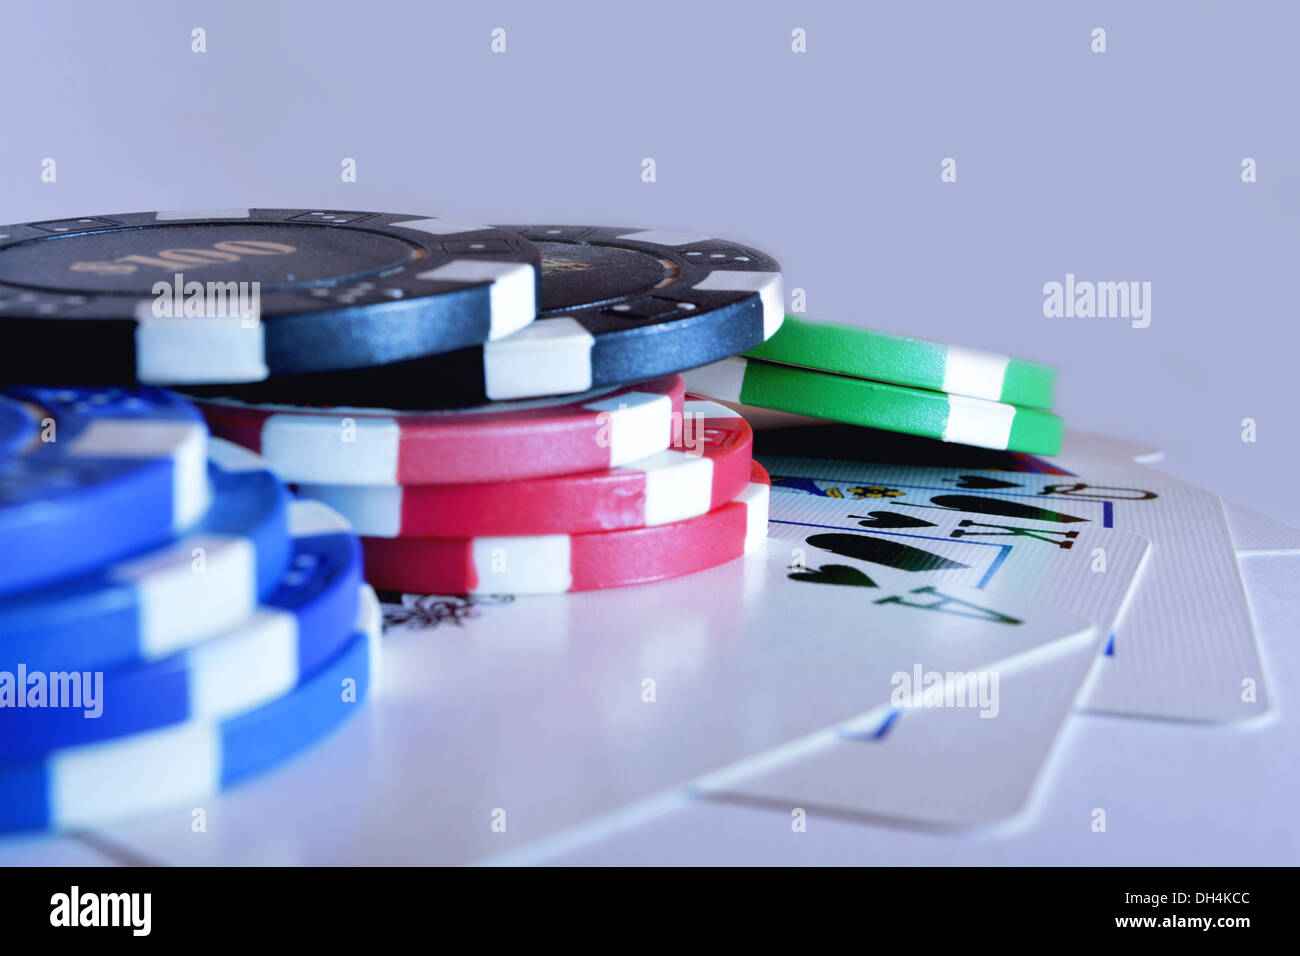 Poker Chips With Royal Flush Cards - Stock Image